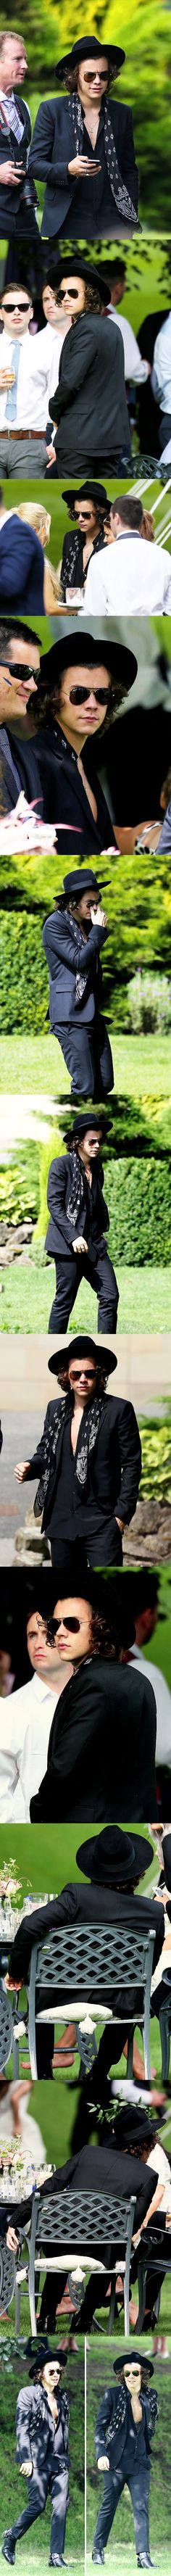 Is this what he would be wearing at Liam's wedding in After? Yes. And is he still attractive? Strangely, yes. Why? He's Harry Styles. #afterfandom #gotnoshame